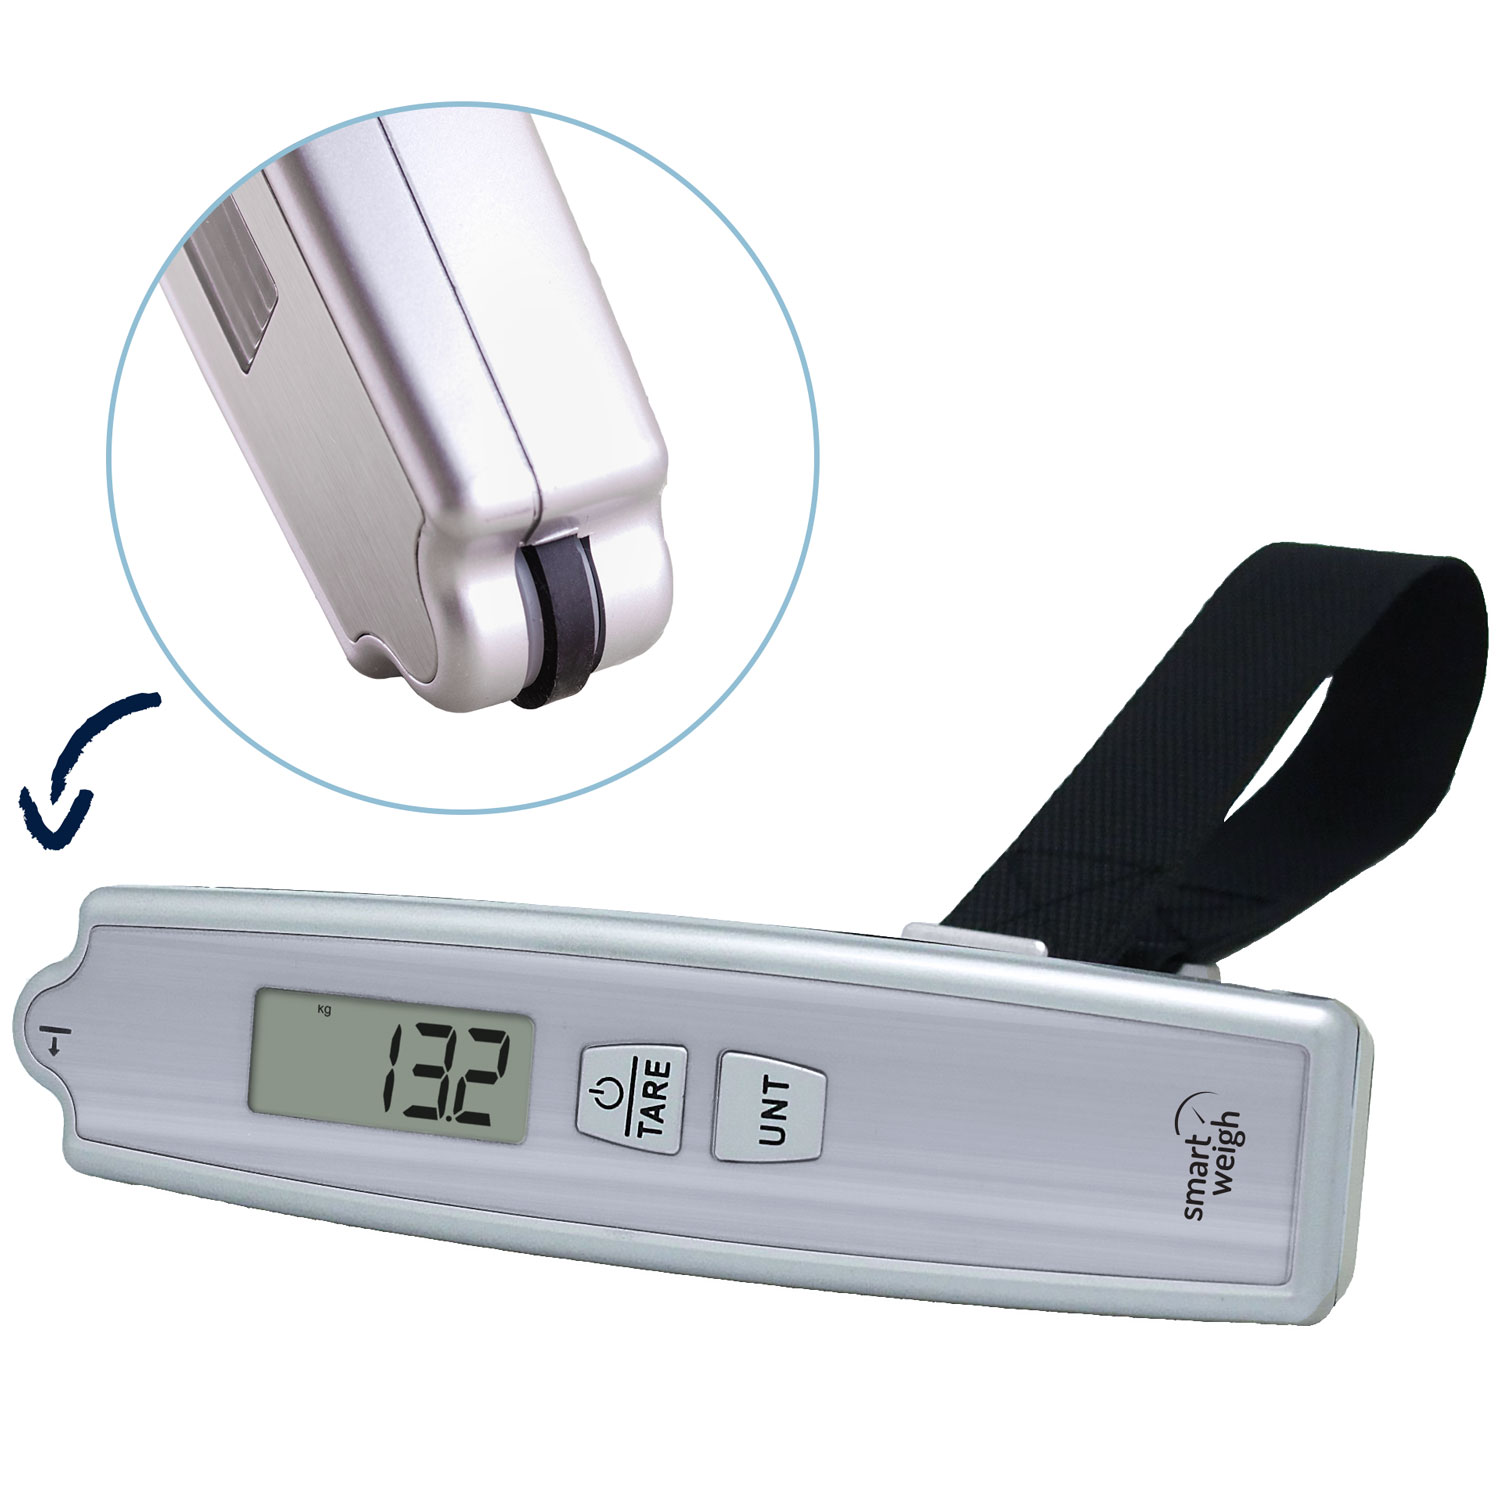 Smart Weigh Premium Digital Luggage Scale with Electronic Ruler 50kg/110lb